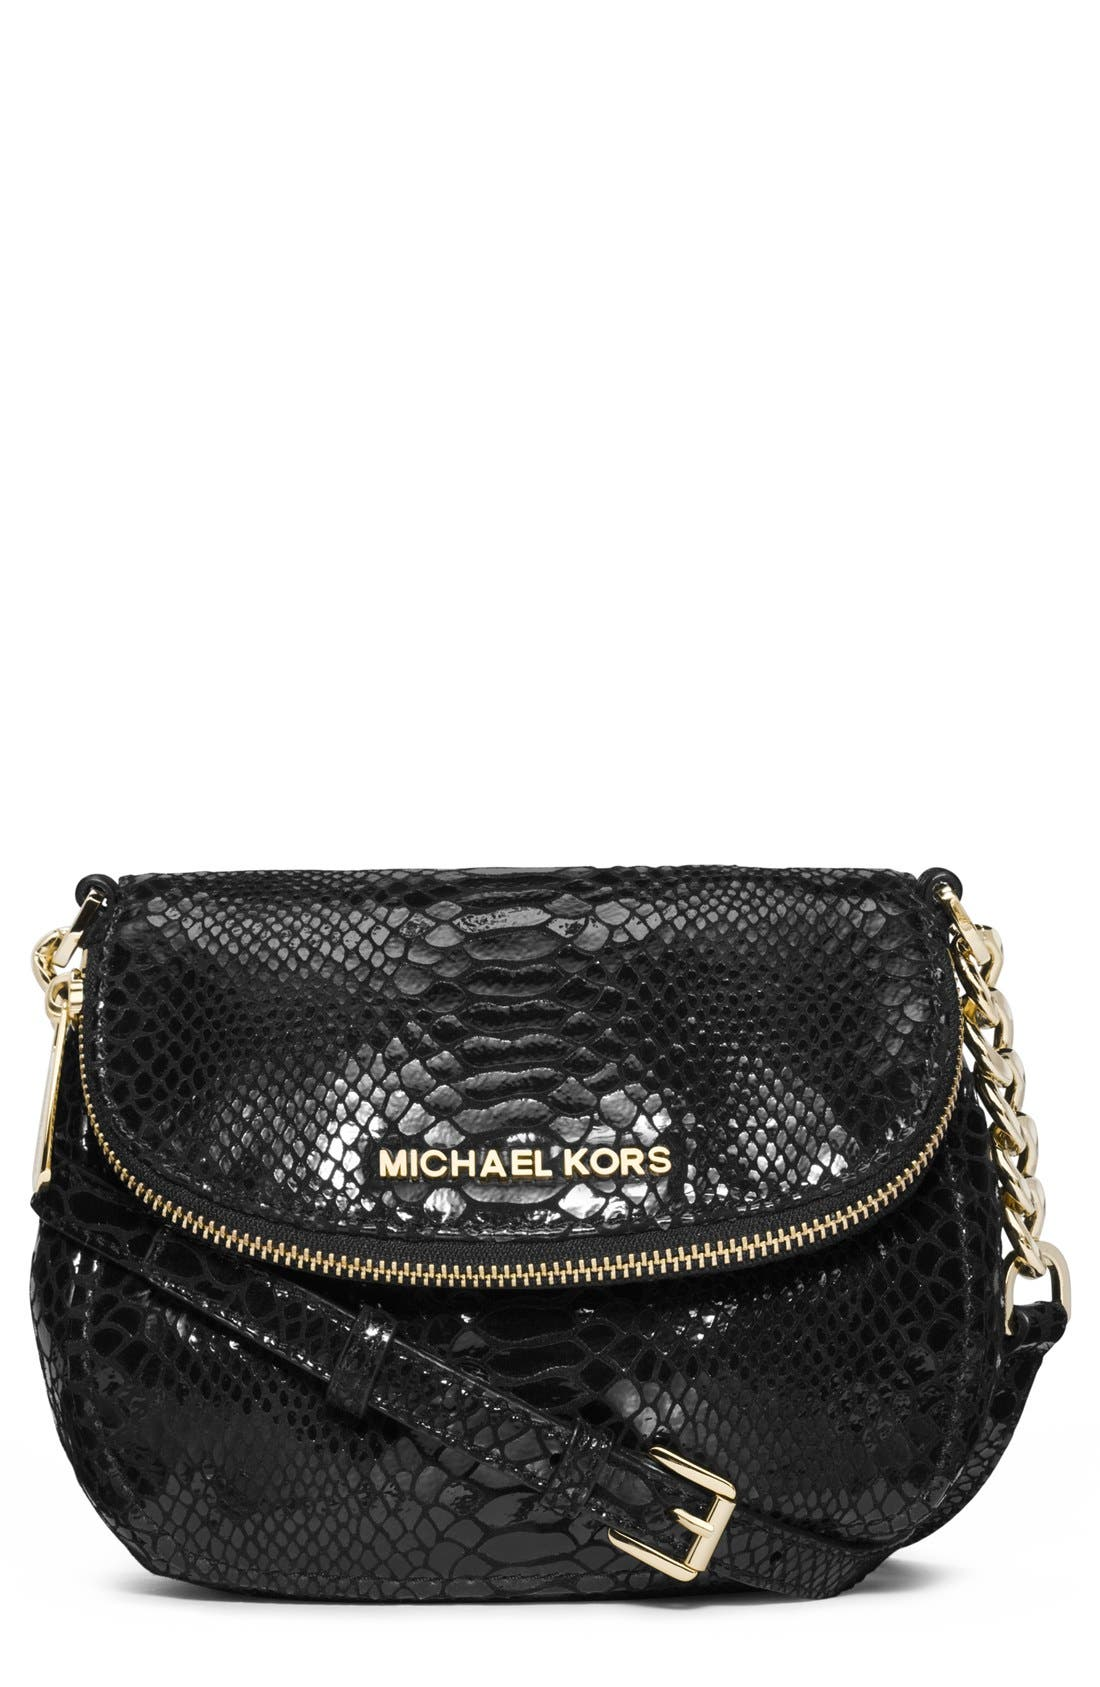 Alternate Image 1 Selected - MICHAEL Michael Kors 'Bedford' Python Embossed Leather Crossbody Bag